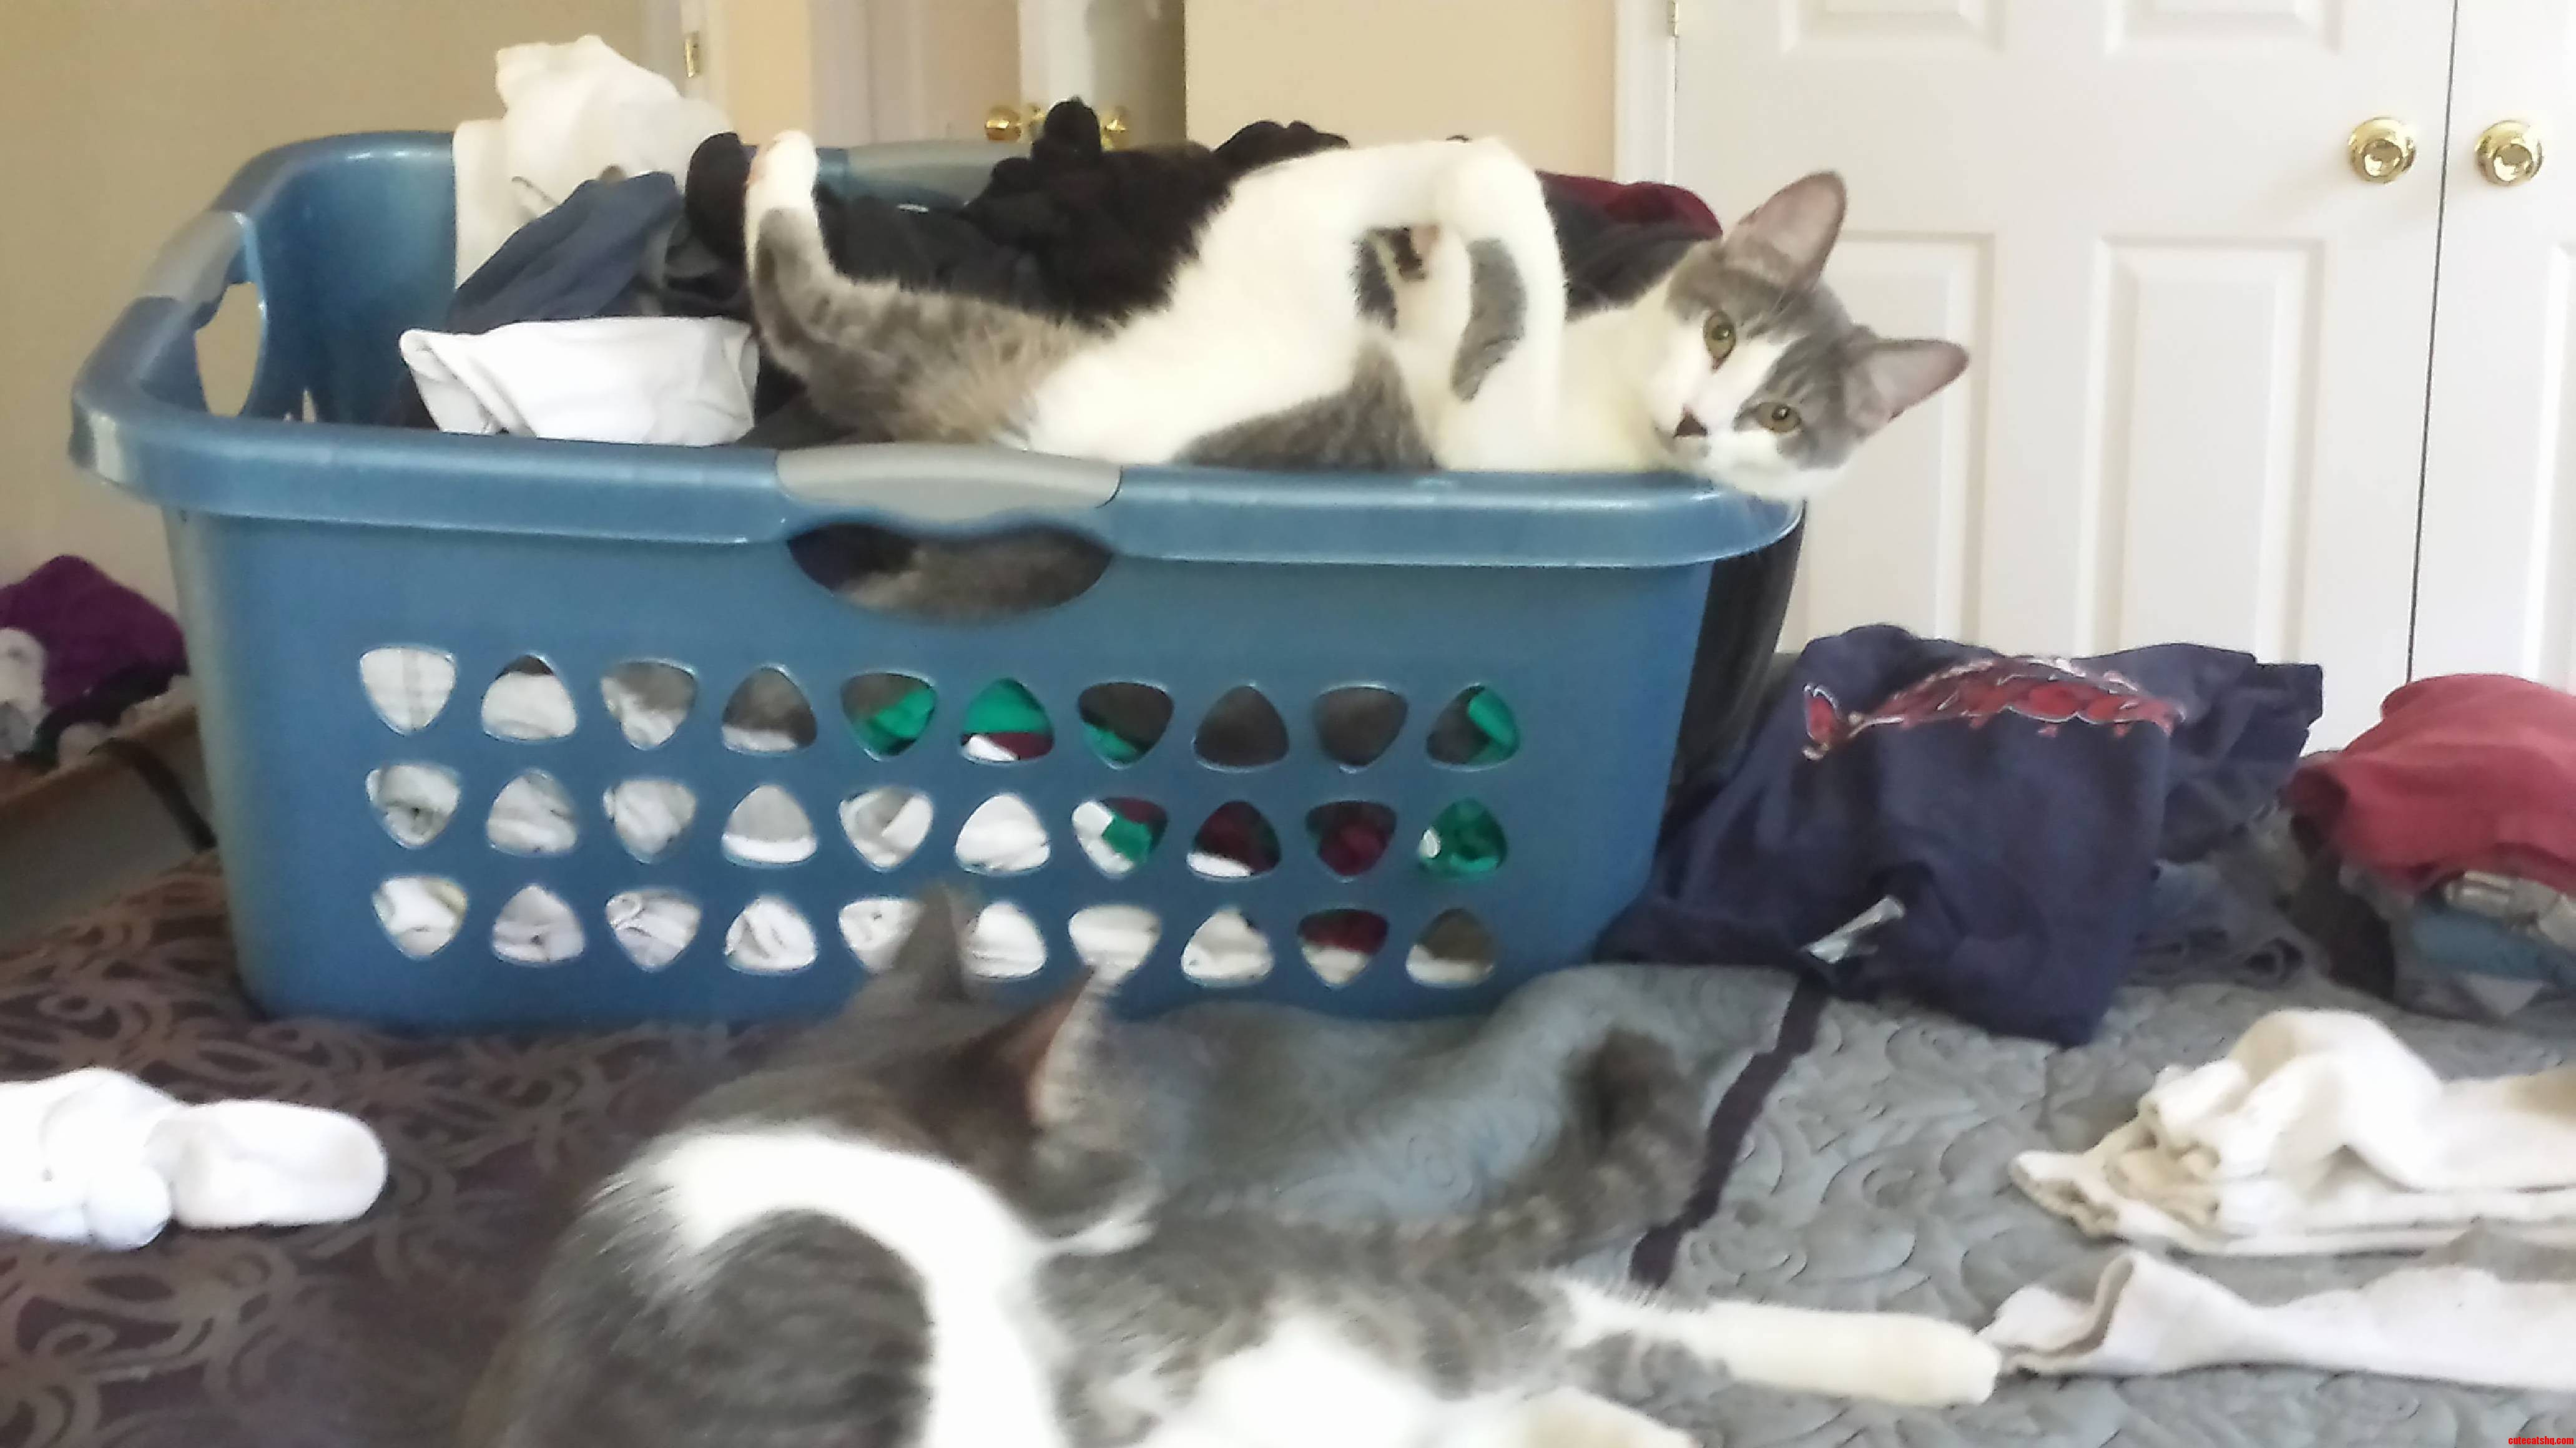 Every Time Clean Laundry Is Involved.